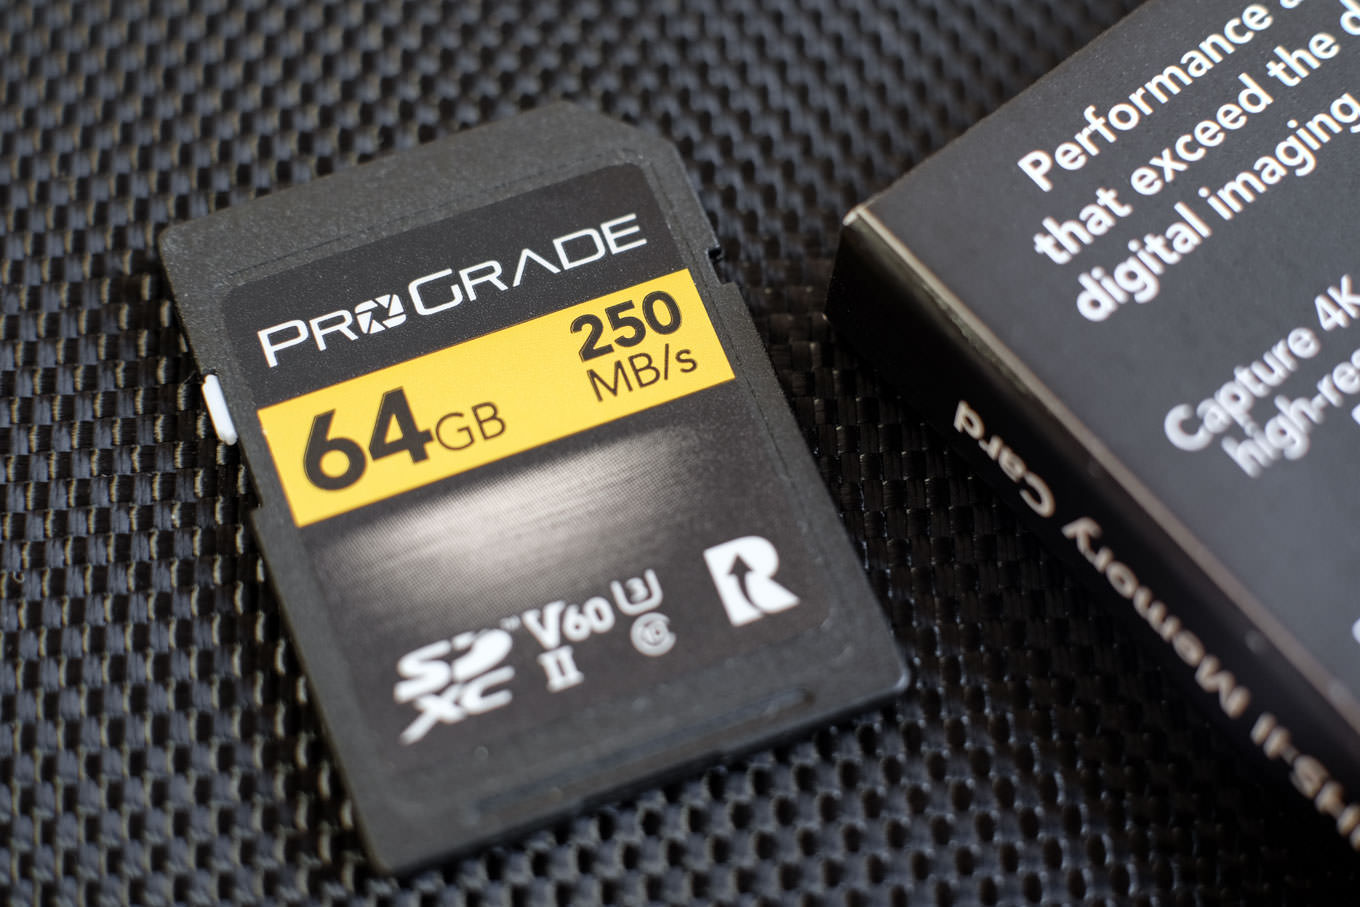 ProGrade Digital SDカード V60